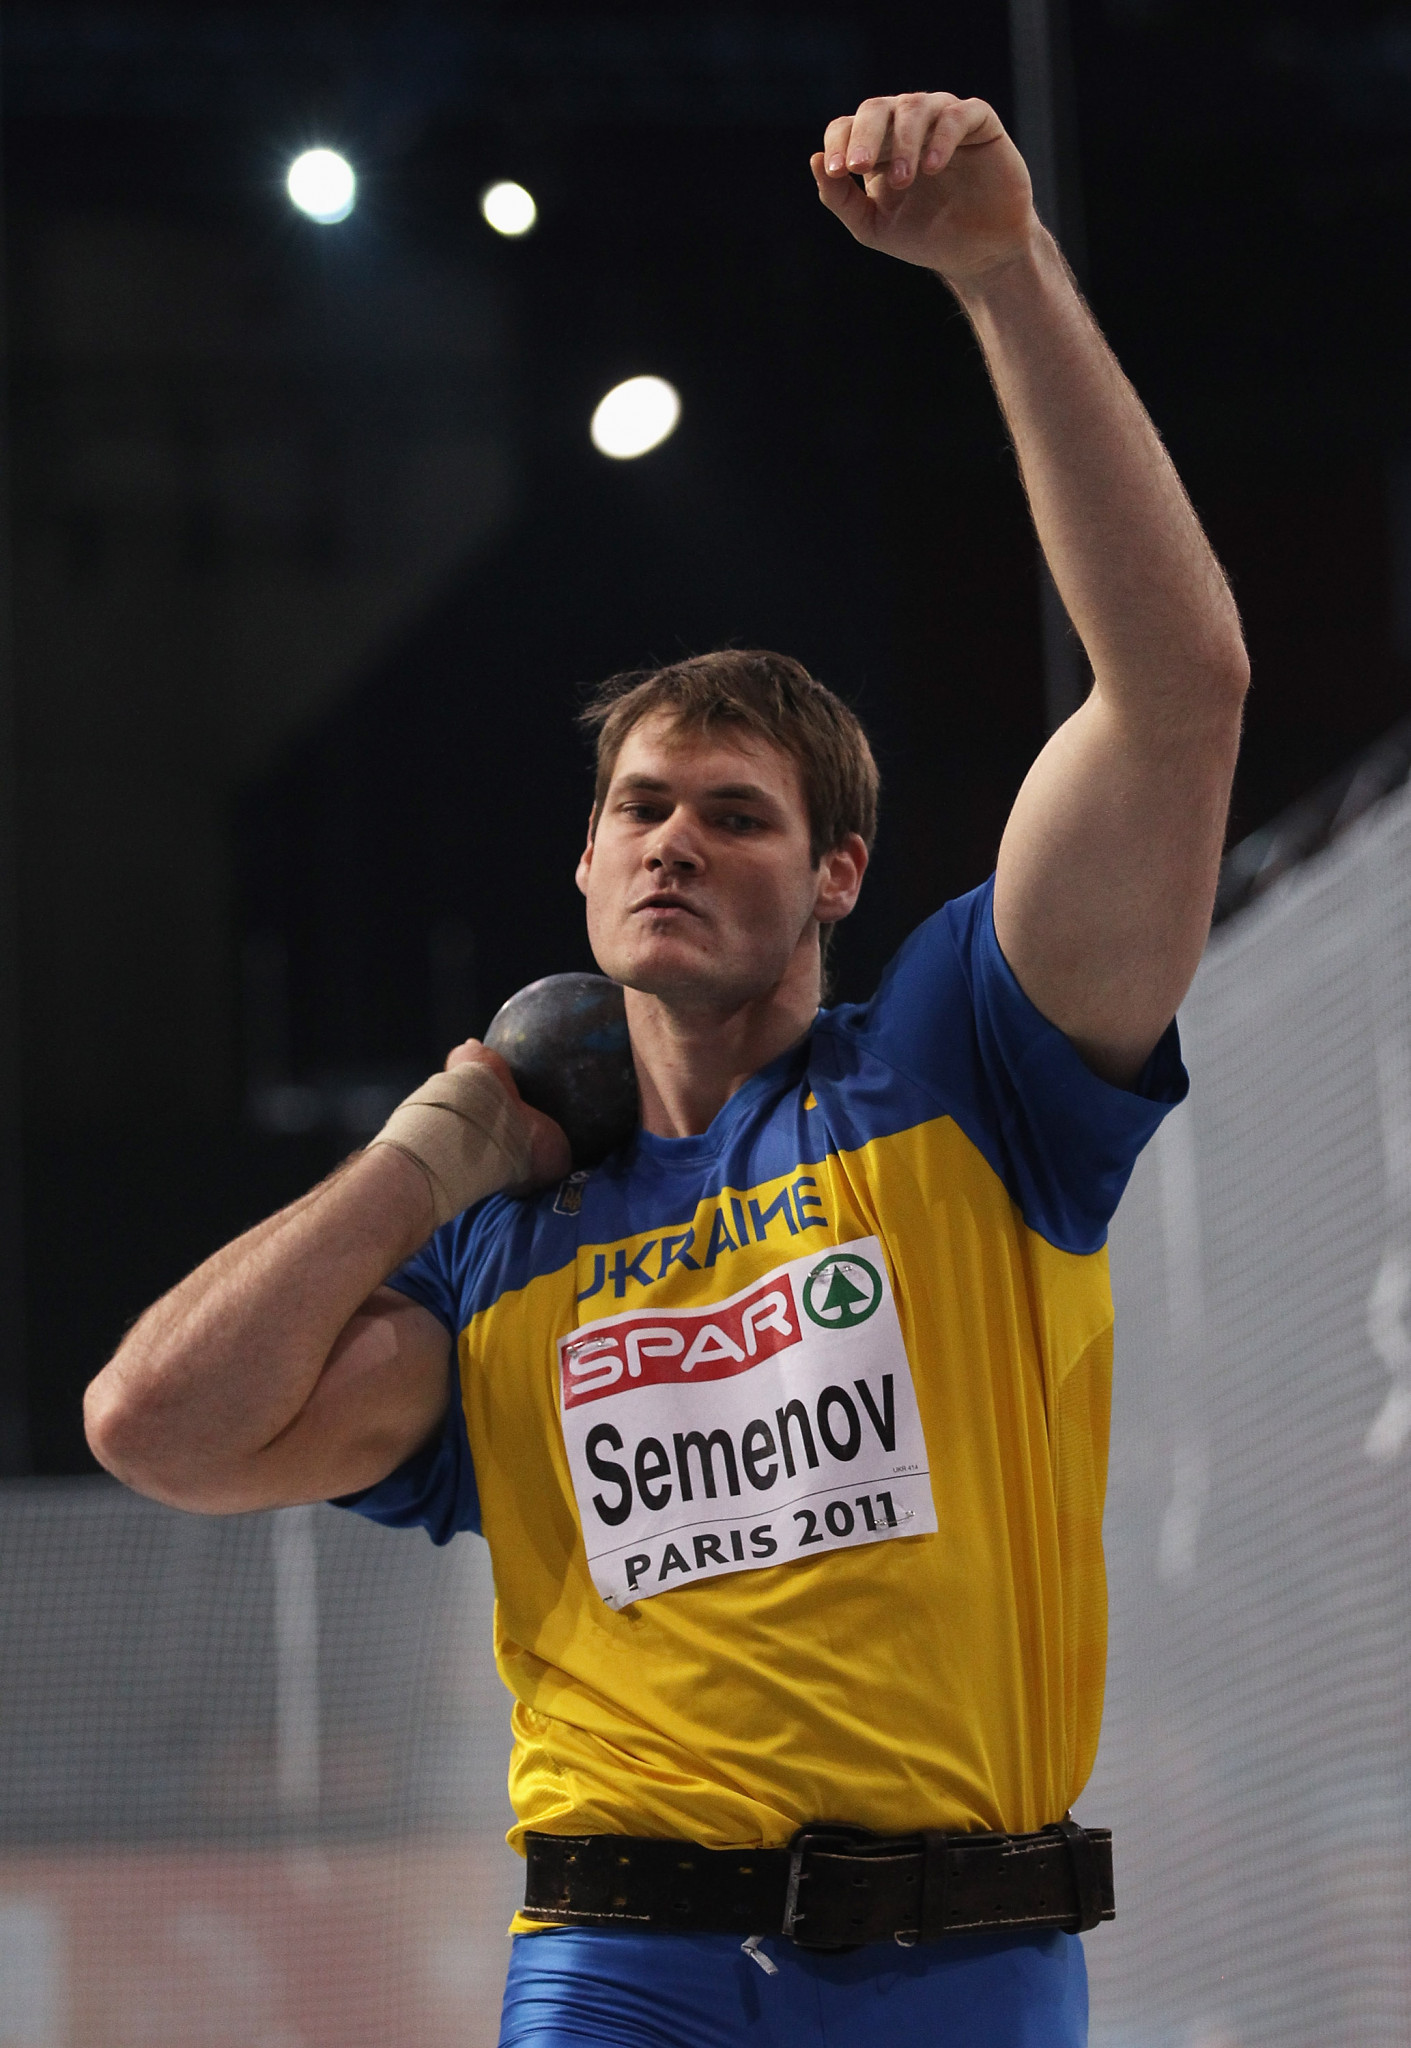 Andriy Semenov competed at two Olympic Games ©Getty Images